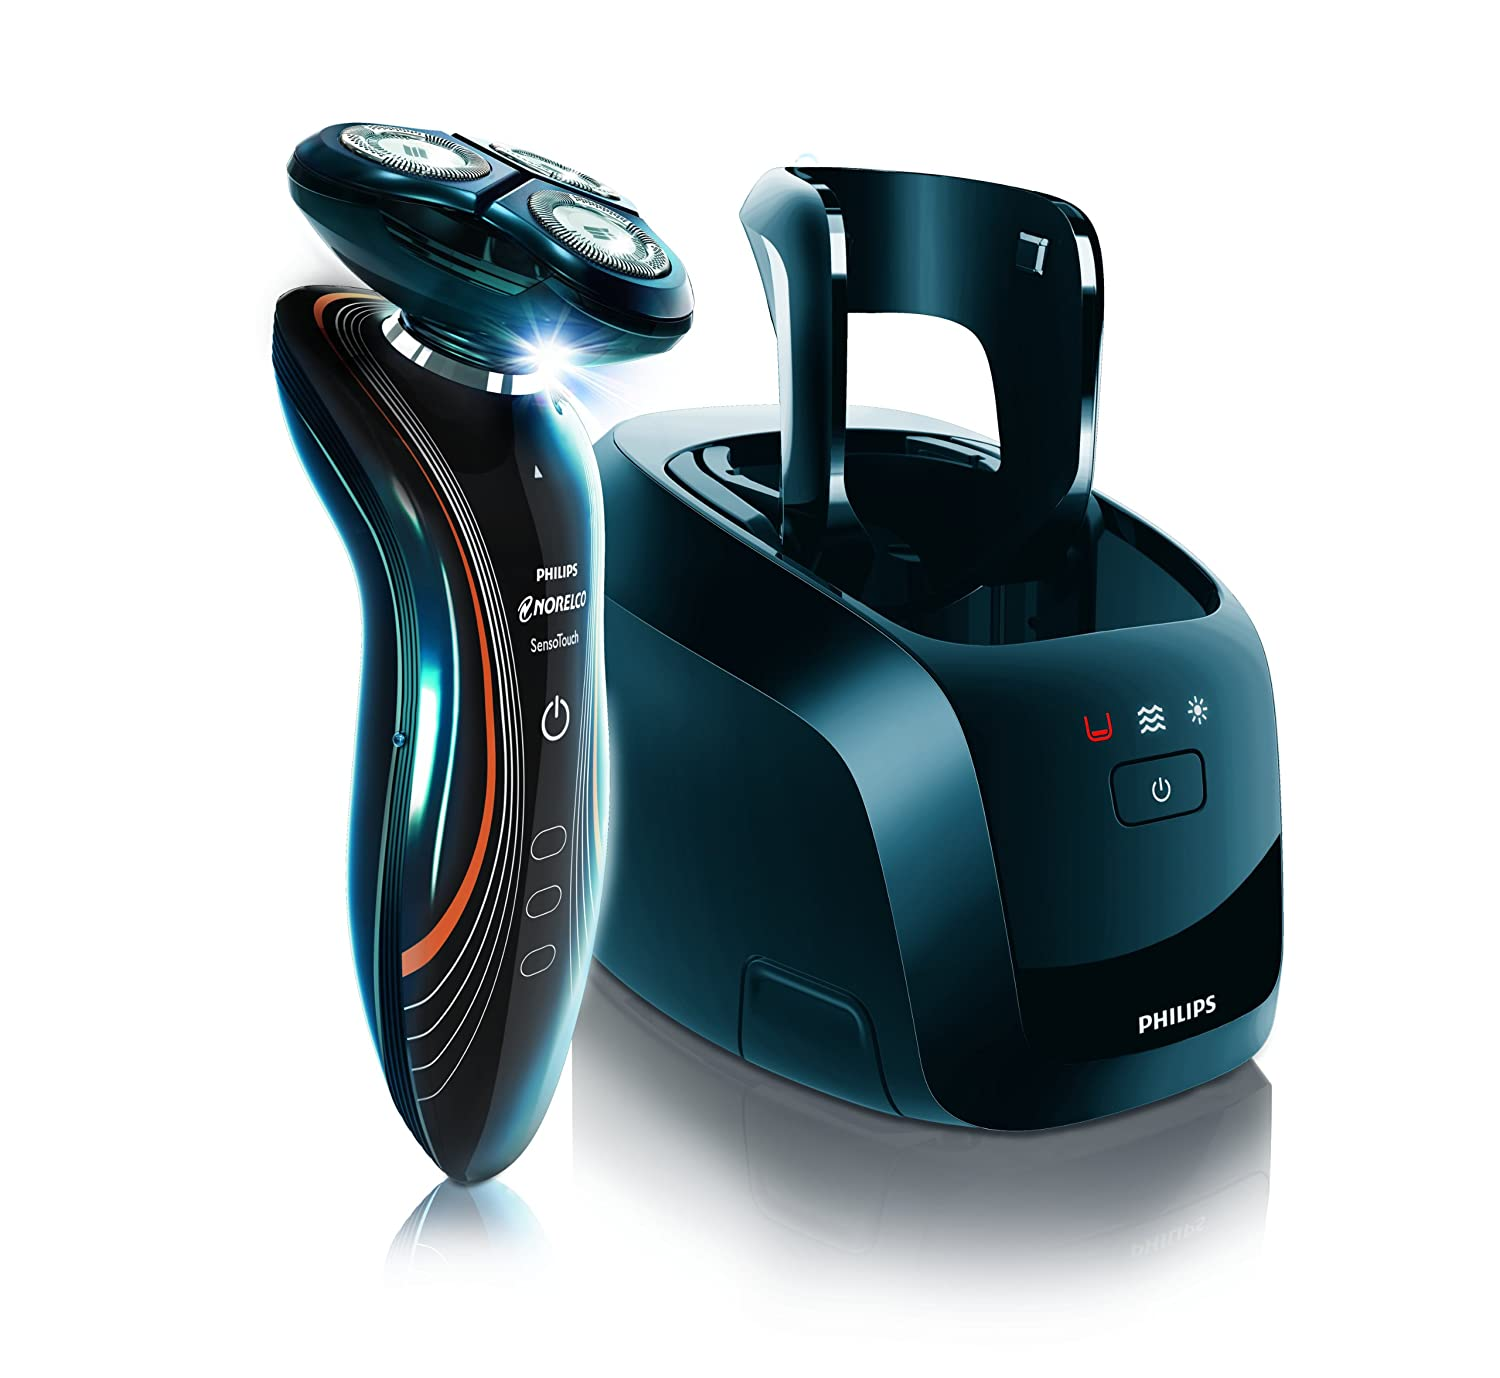 Philips Norelco 1160X SensoTouch 2d Electric Shaver with Jet Clean System